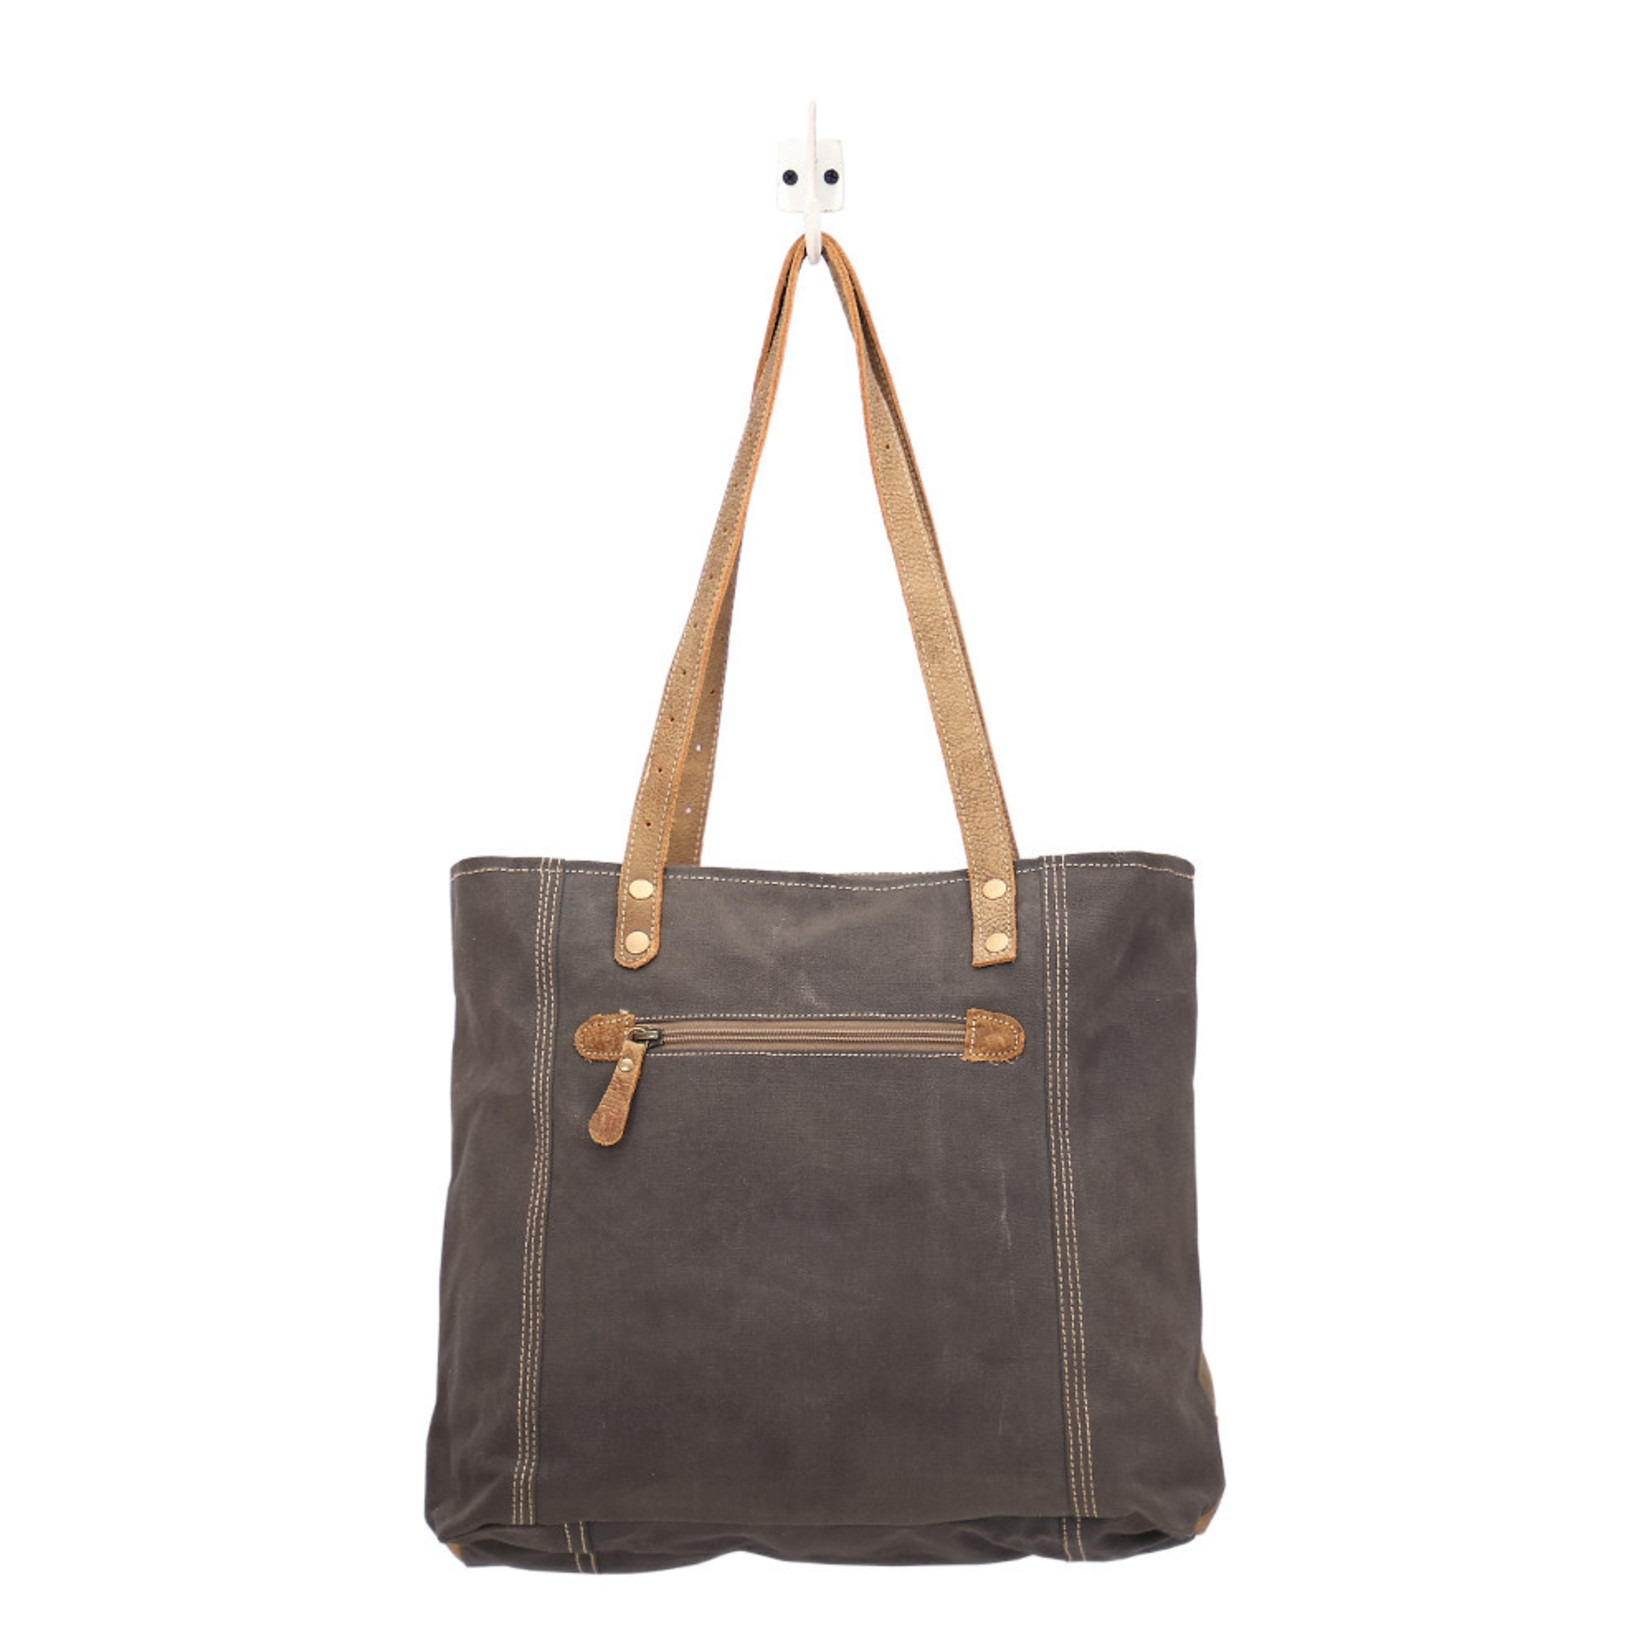 Myra Bags S-1522 Unique Key Tote Bag